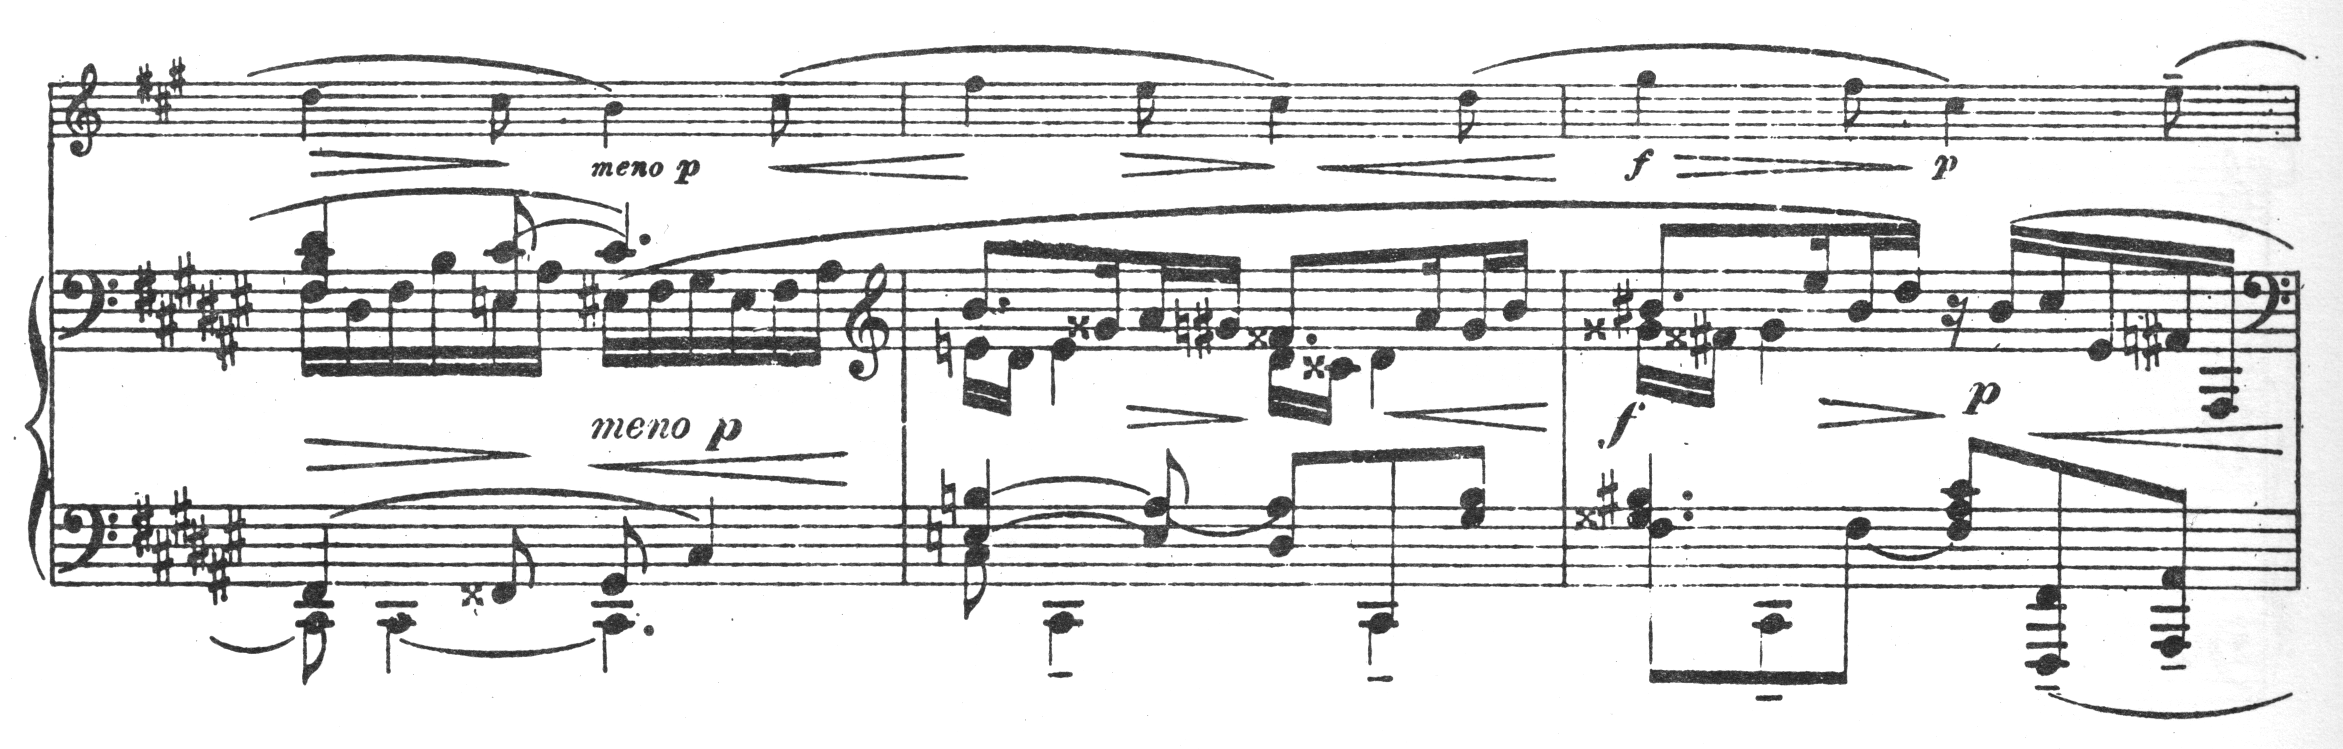 Interesting music notation one example is this f triple sharp biocorpaavc Image collections